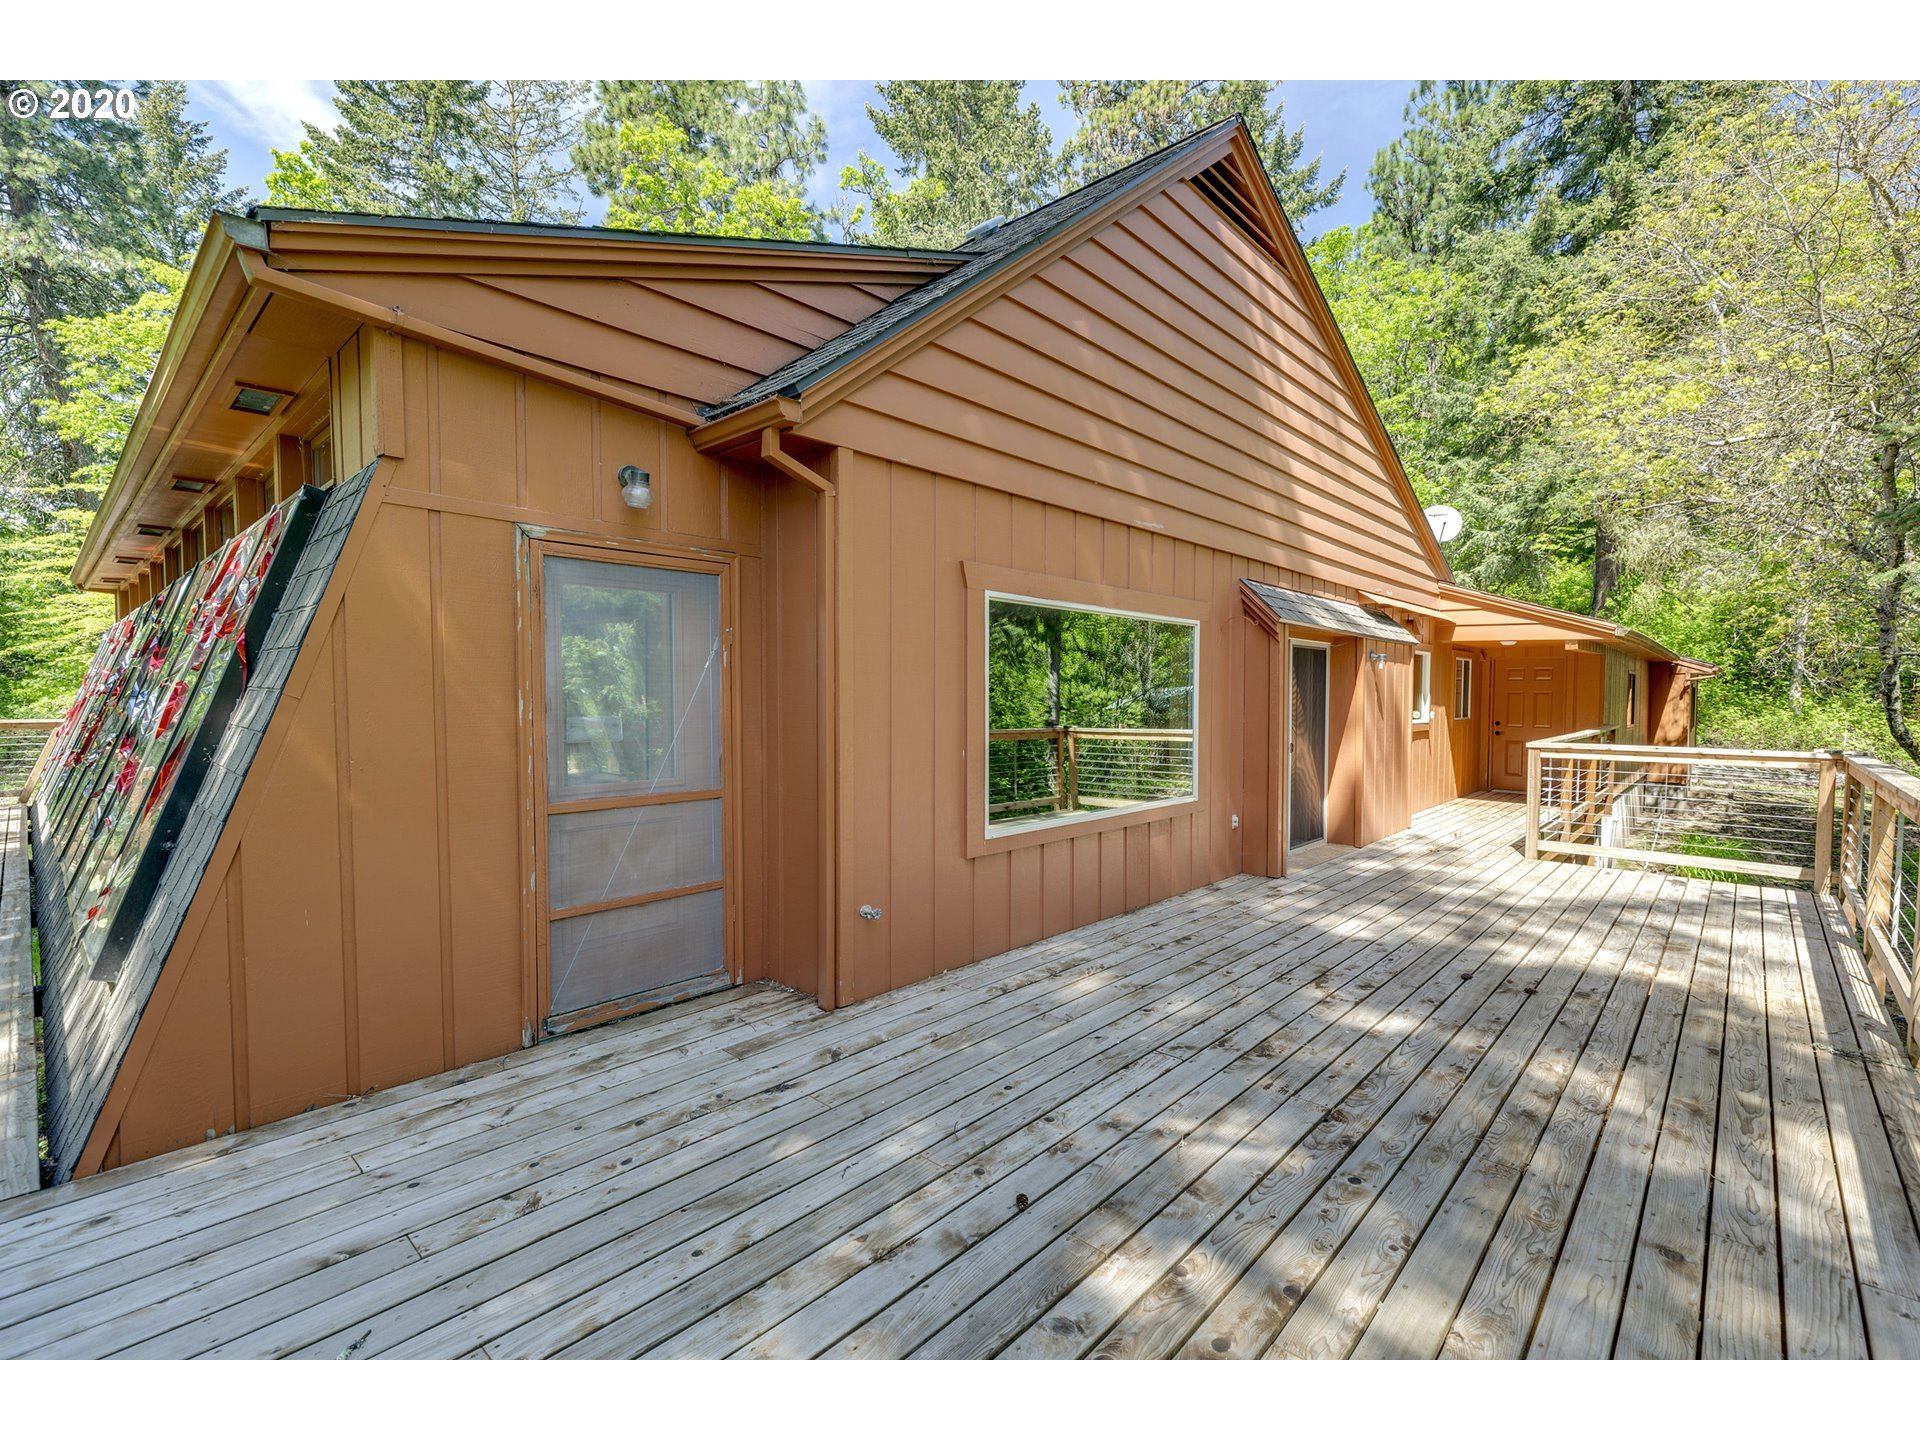 Photo of 3990 ACREE DR, Hood River, OR 97031 (MLS # 20060559)